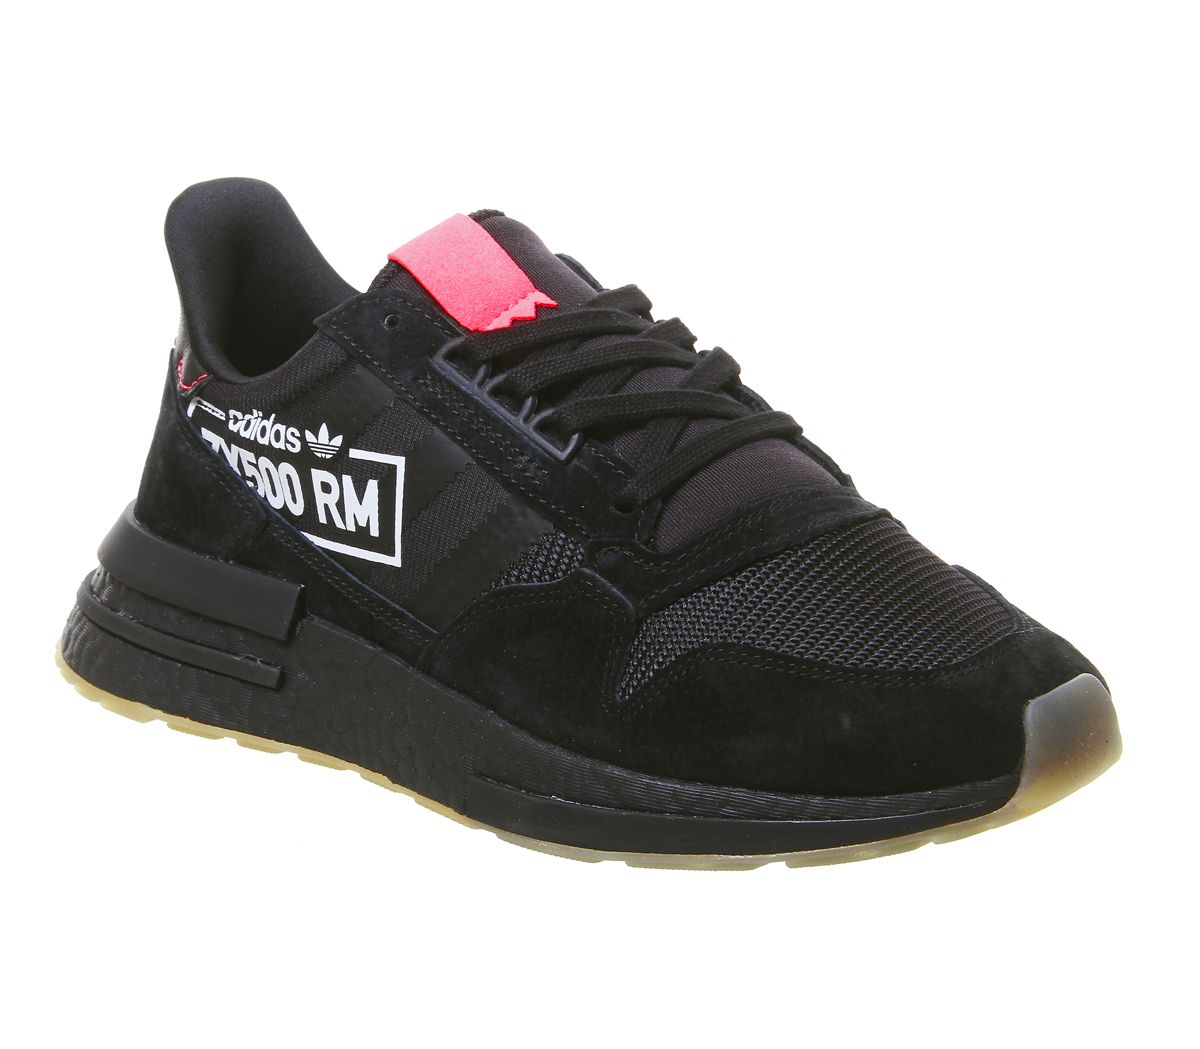 check out 2517a c308d Zx500 Rm Trainers